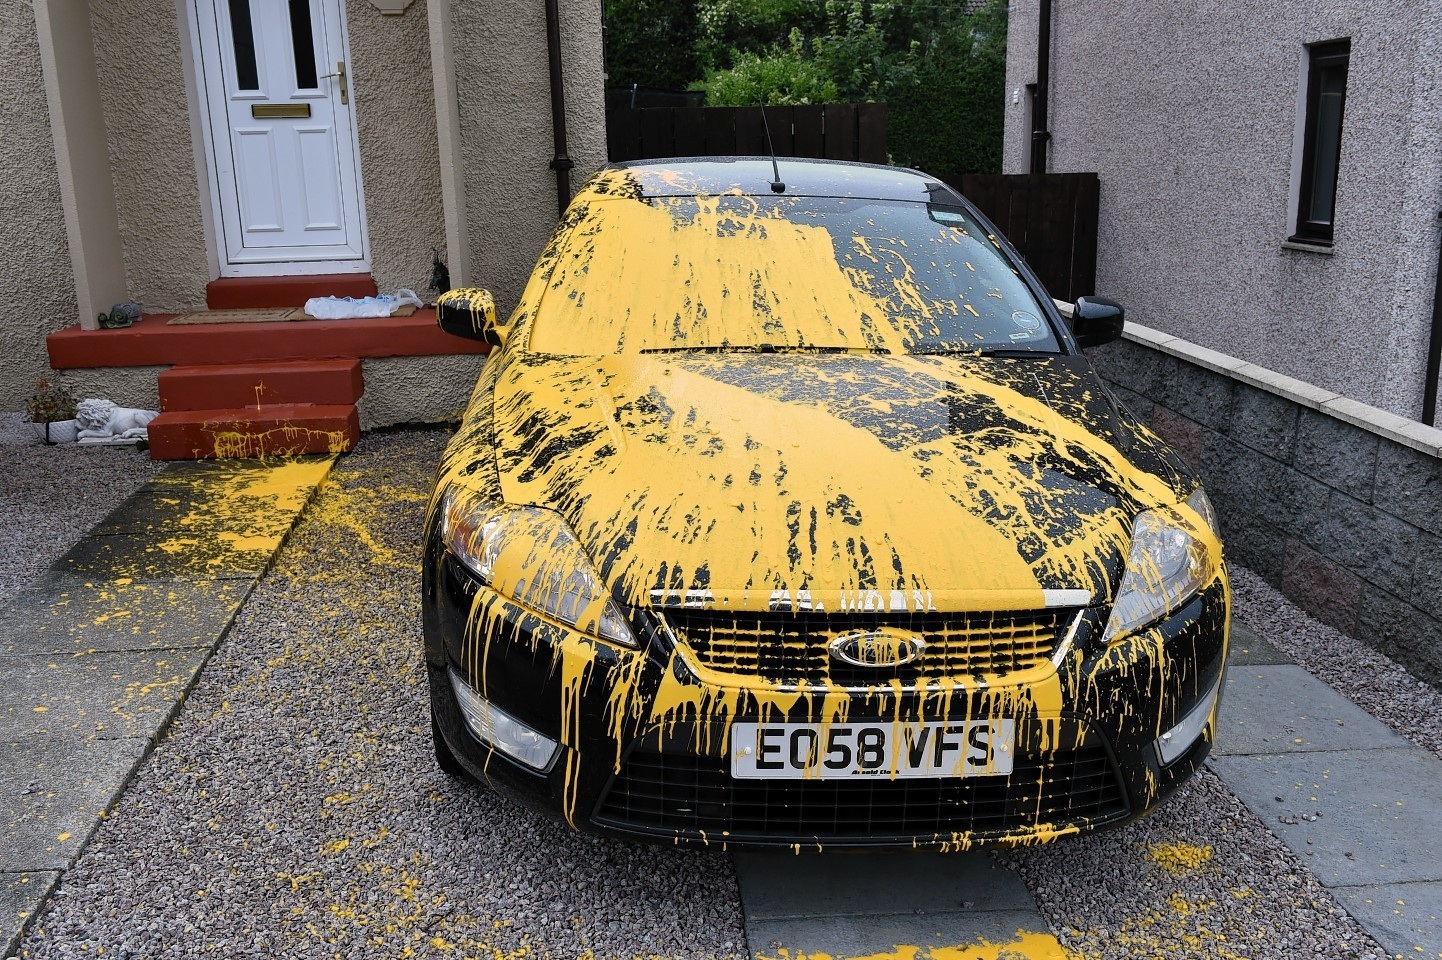 A Ford car was badly damaged with yellow paint on Byron Avenue